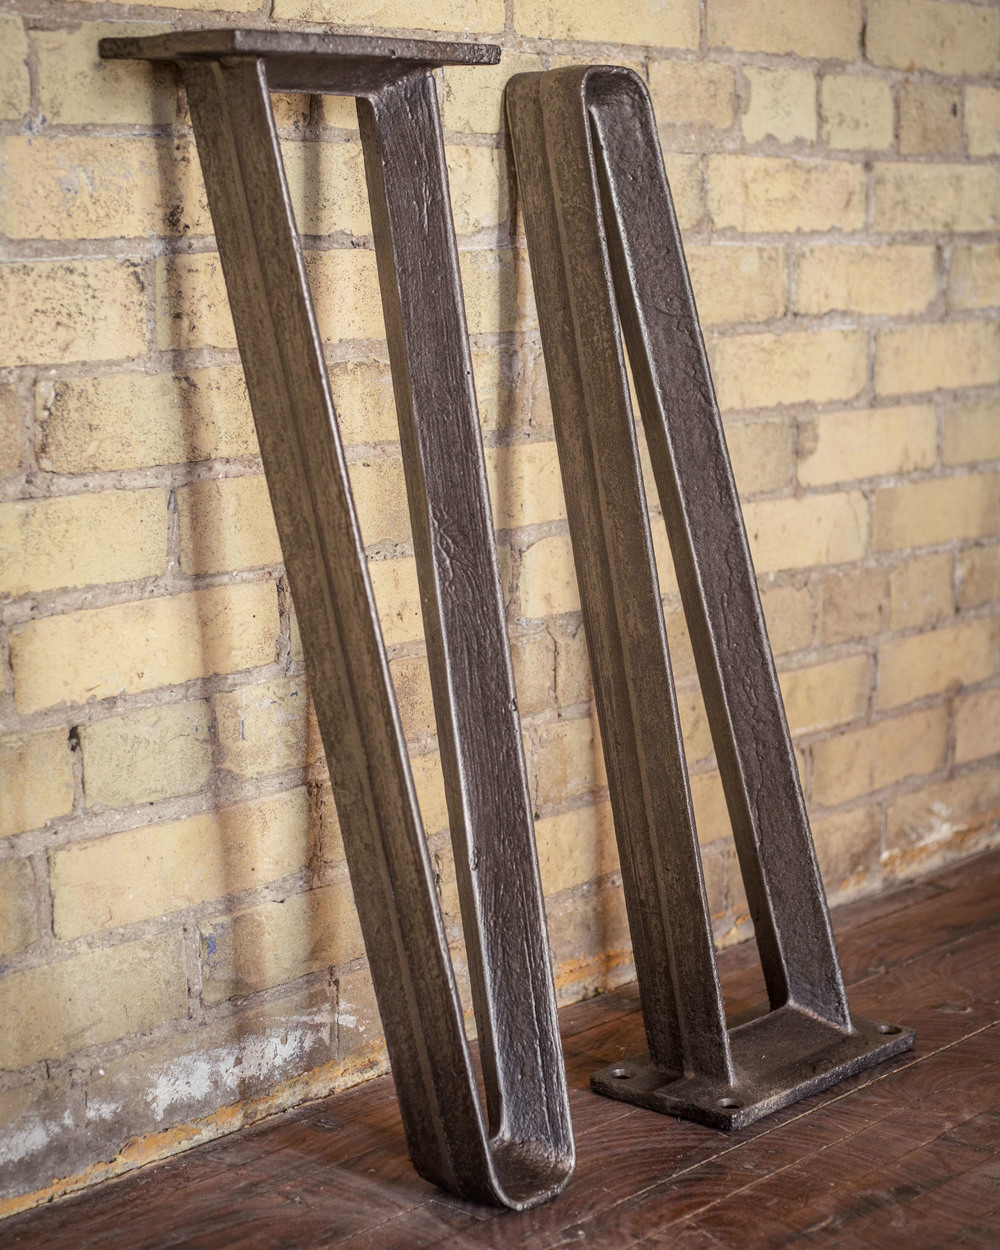 Custom cast iron table legs, made to order by STACKLAB.